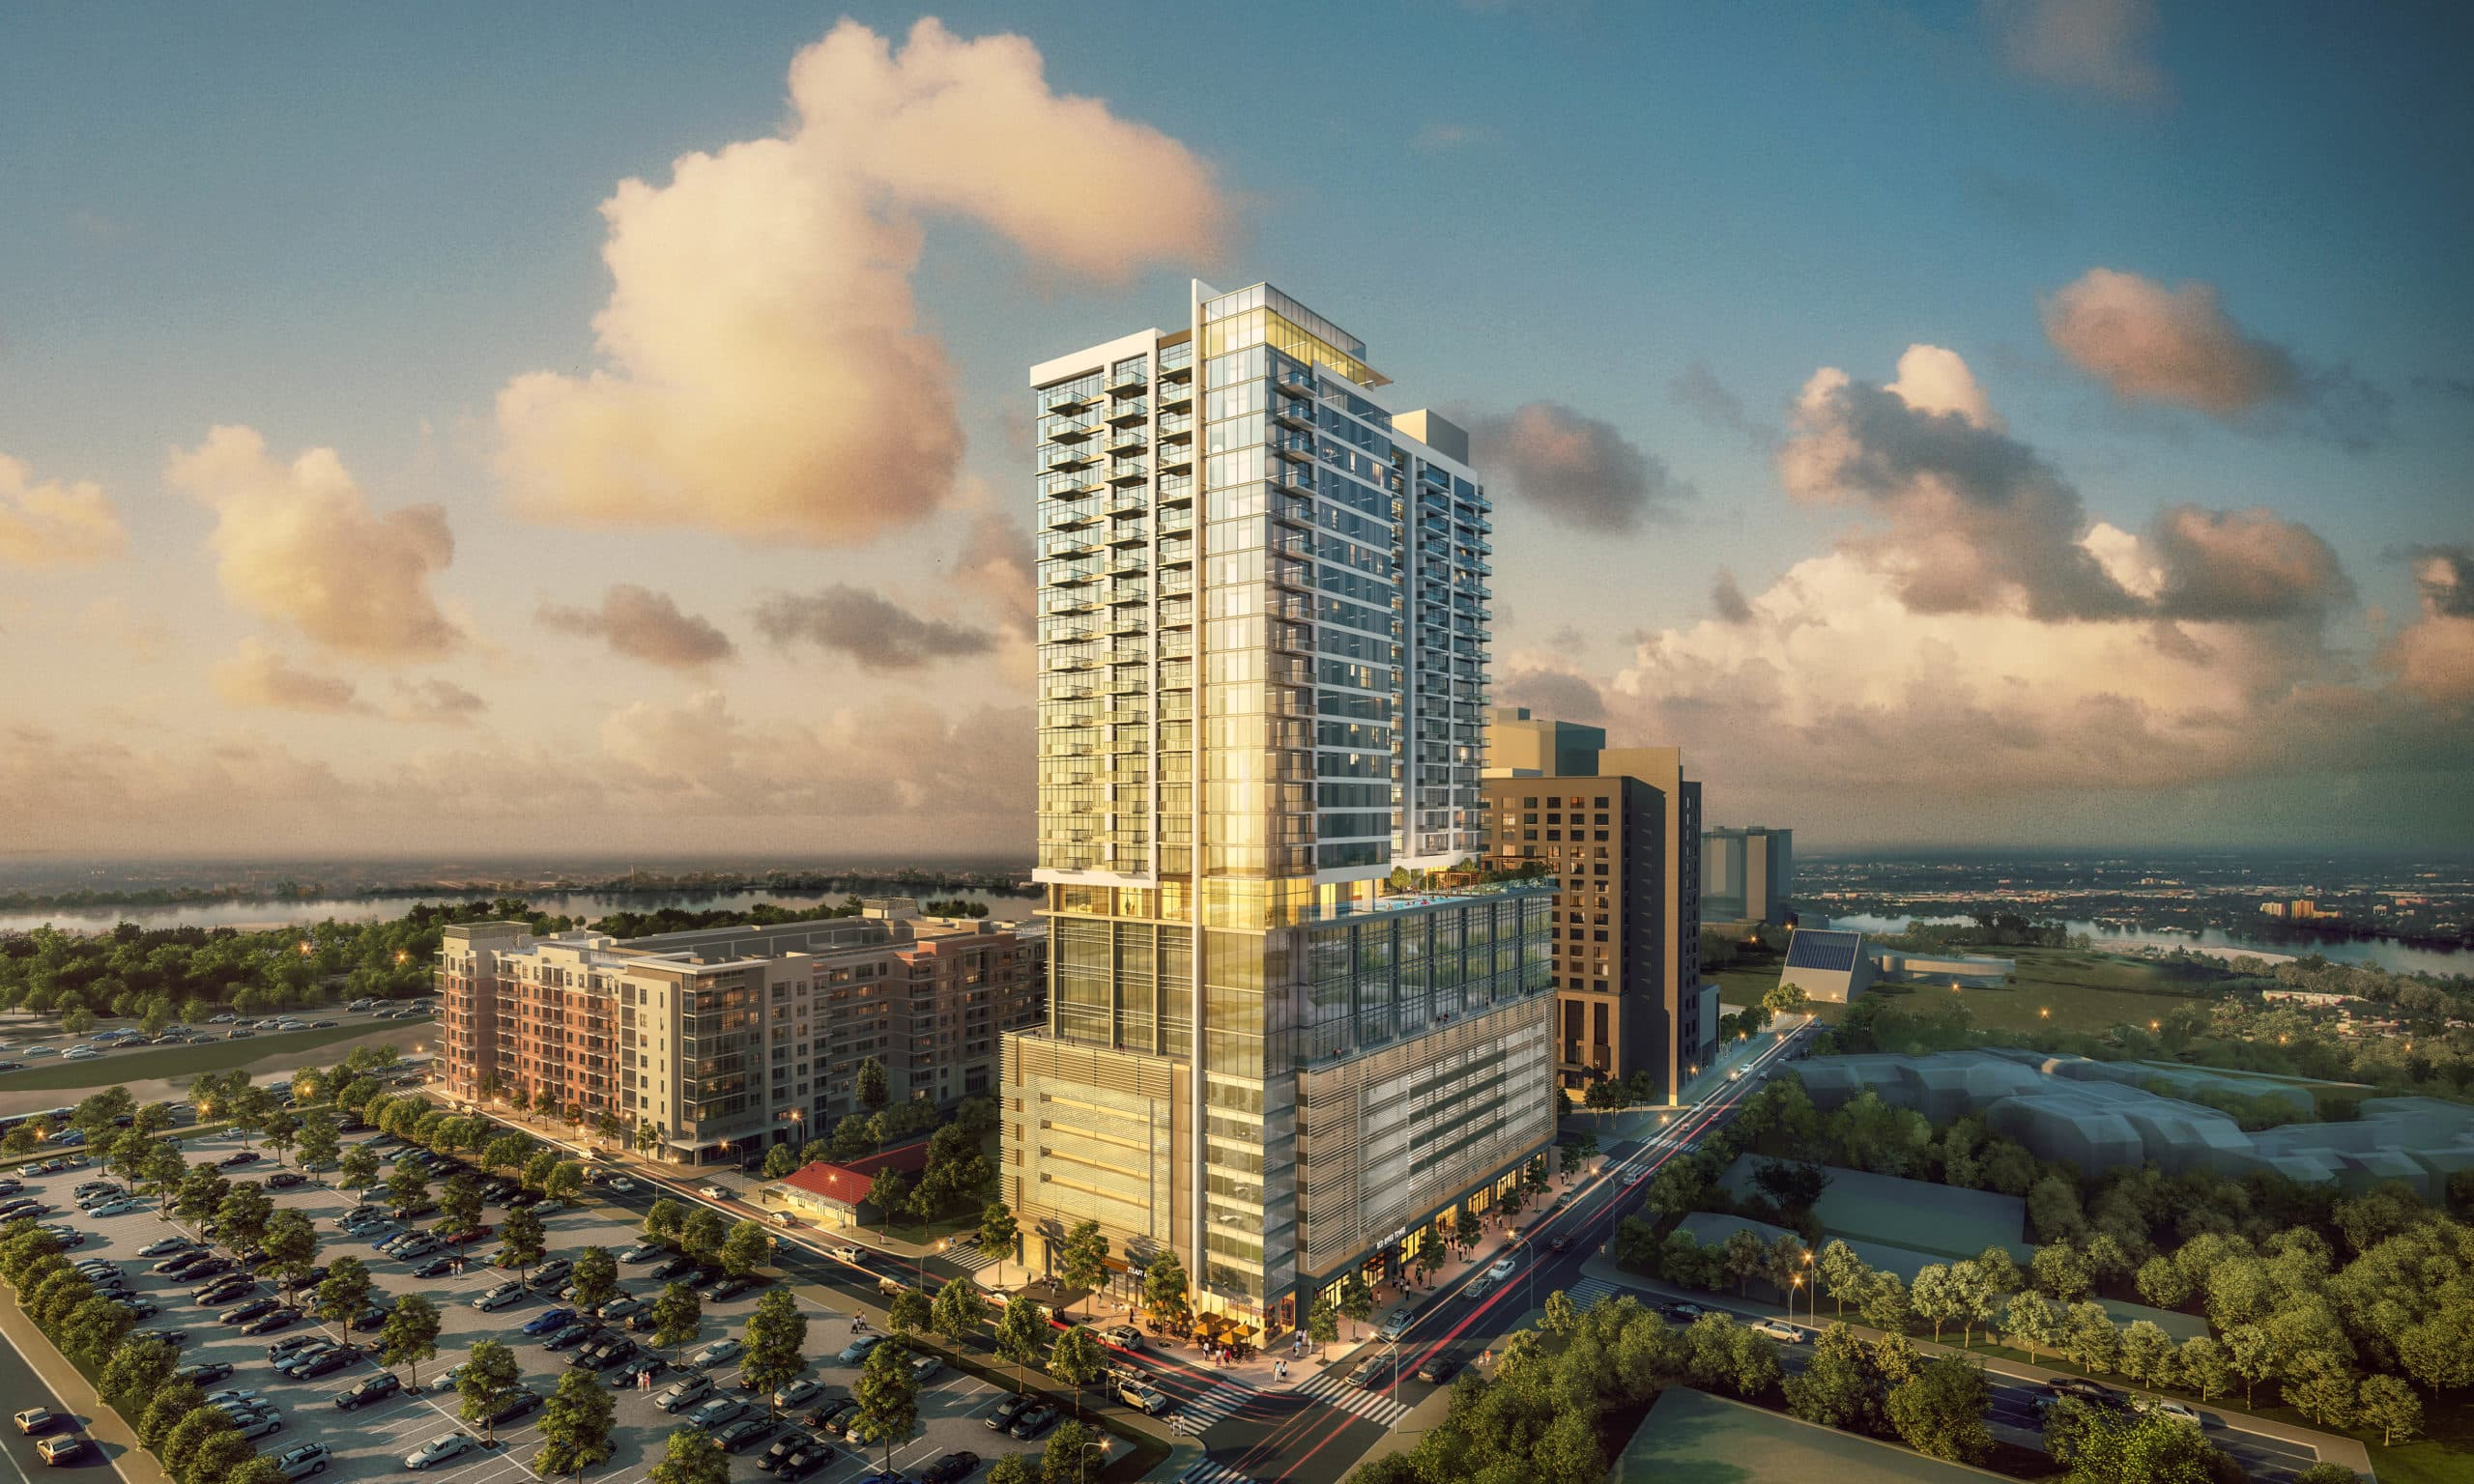 The Quincy | Downtown Austin Buildings 2021